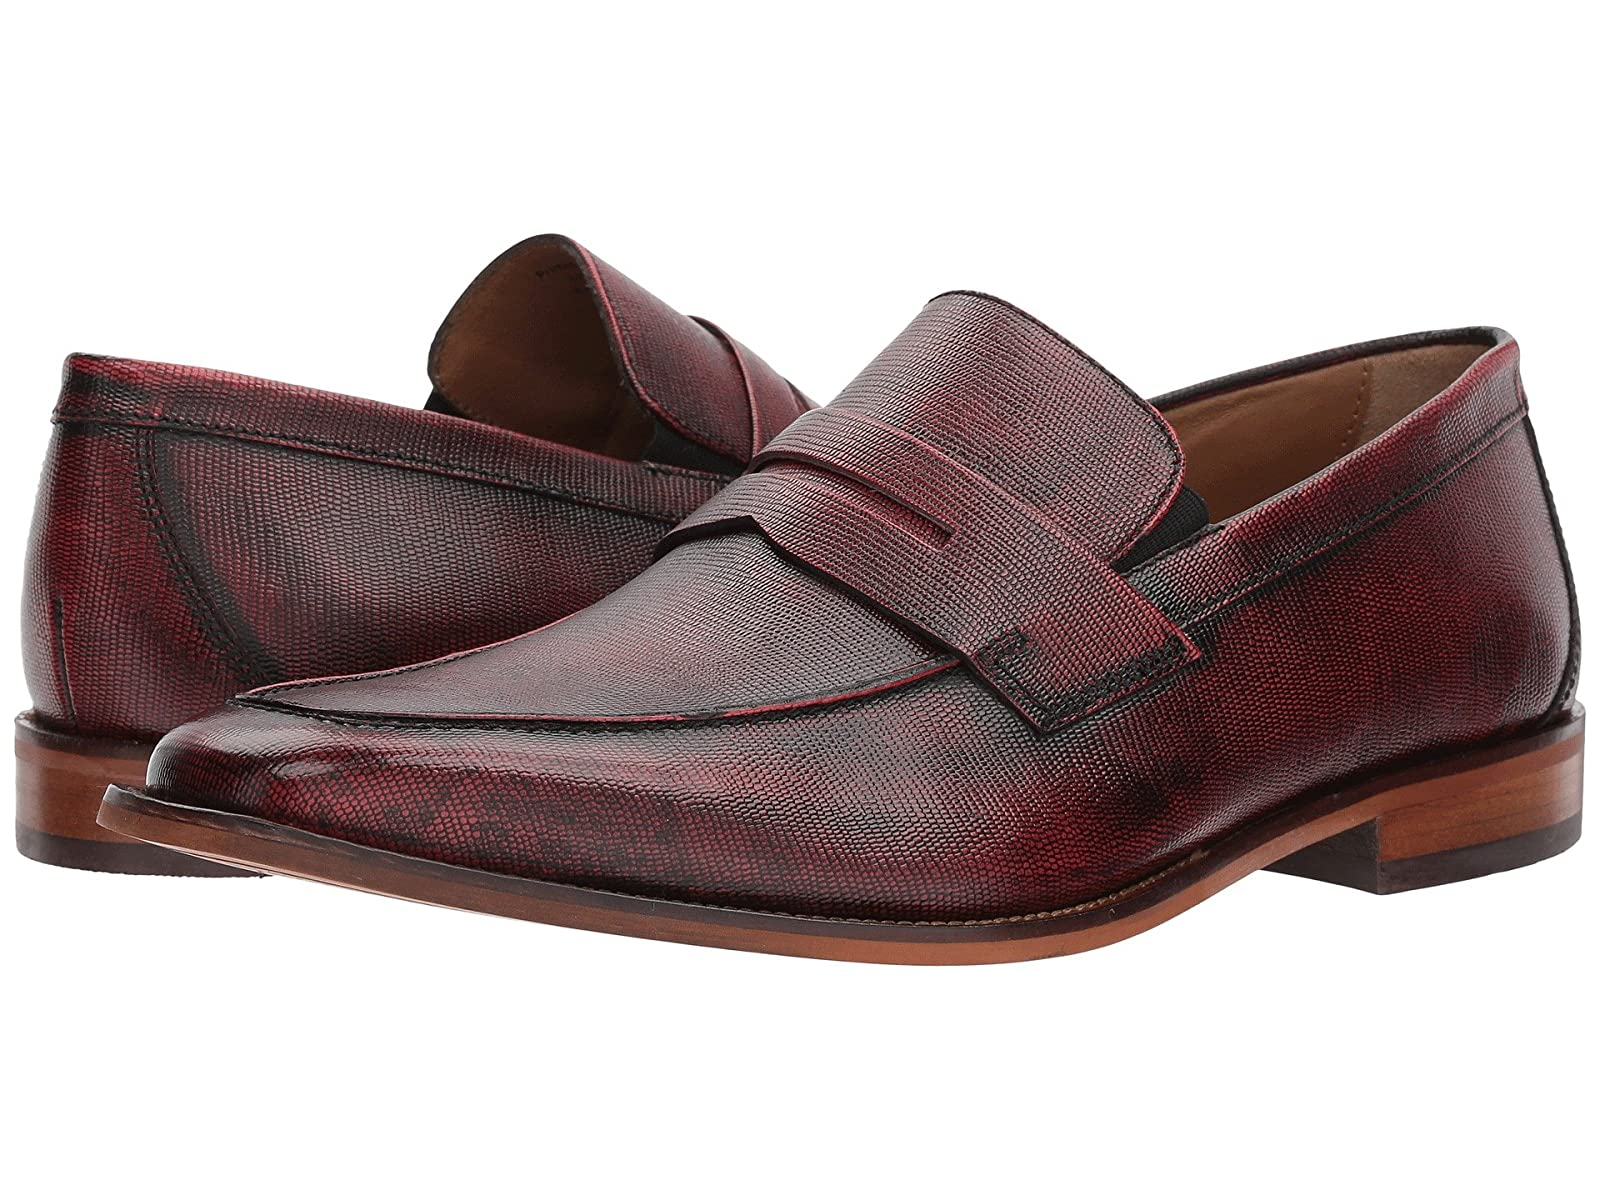 Florsheim Sabato PennyCheap and distinctive eye-catching shoes